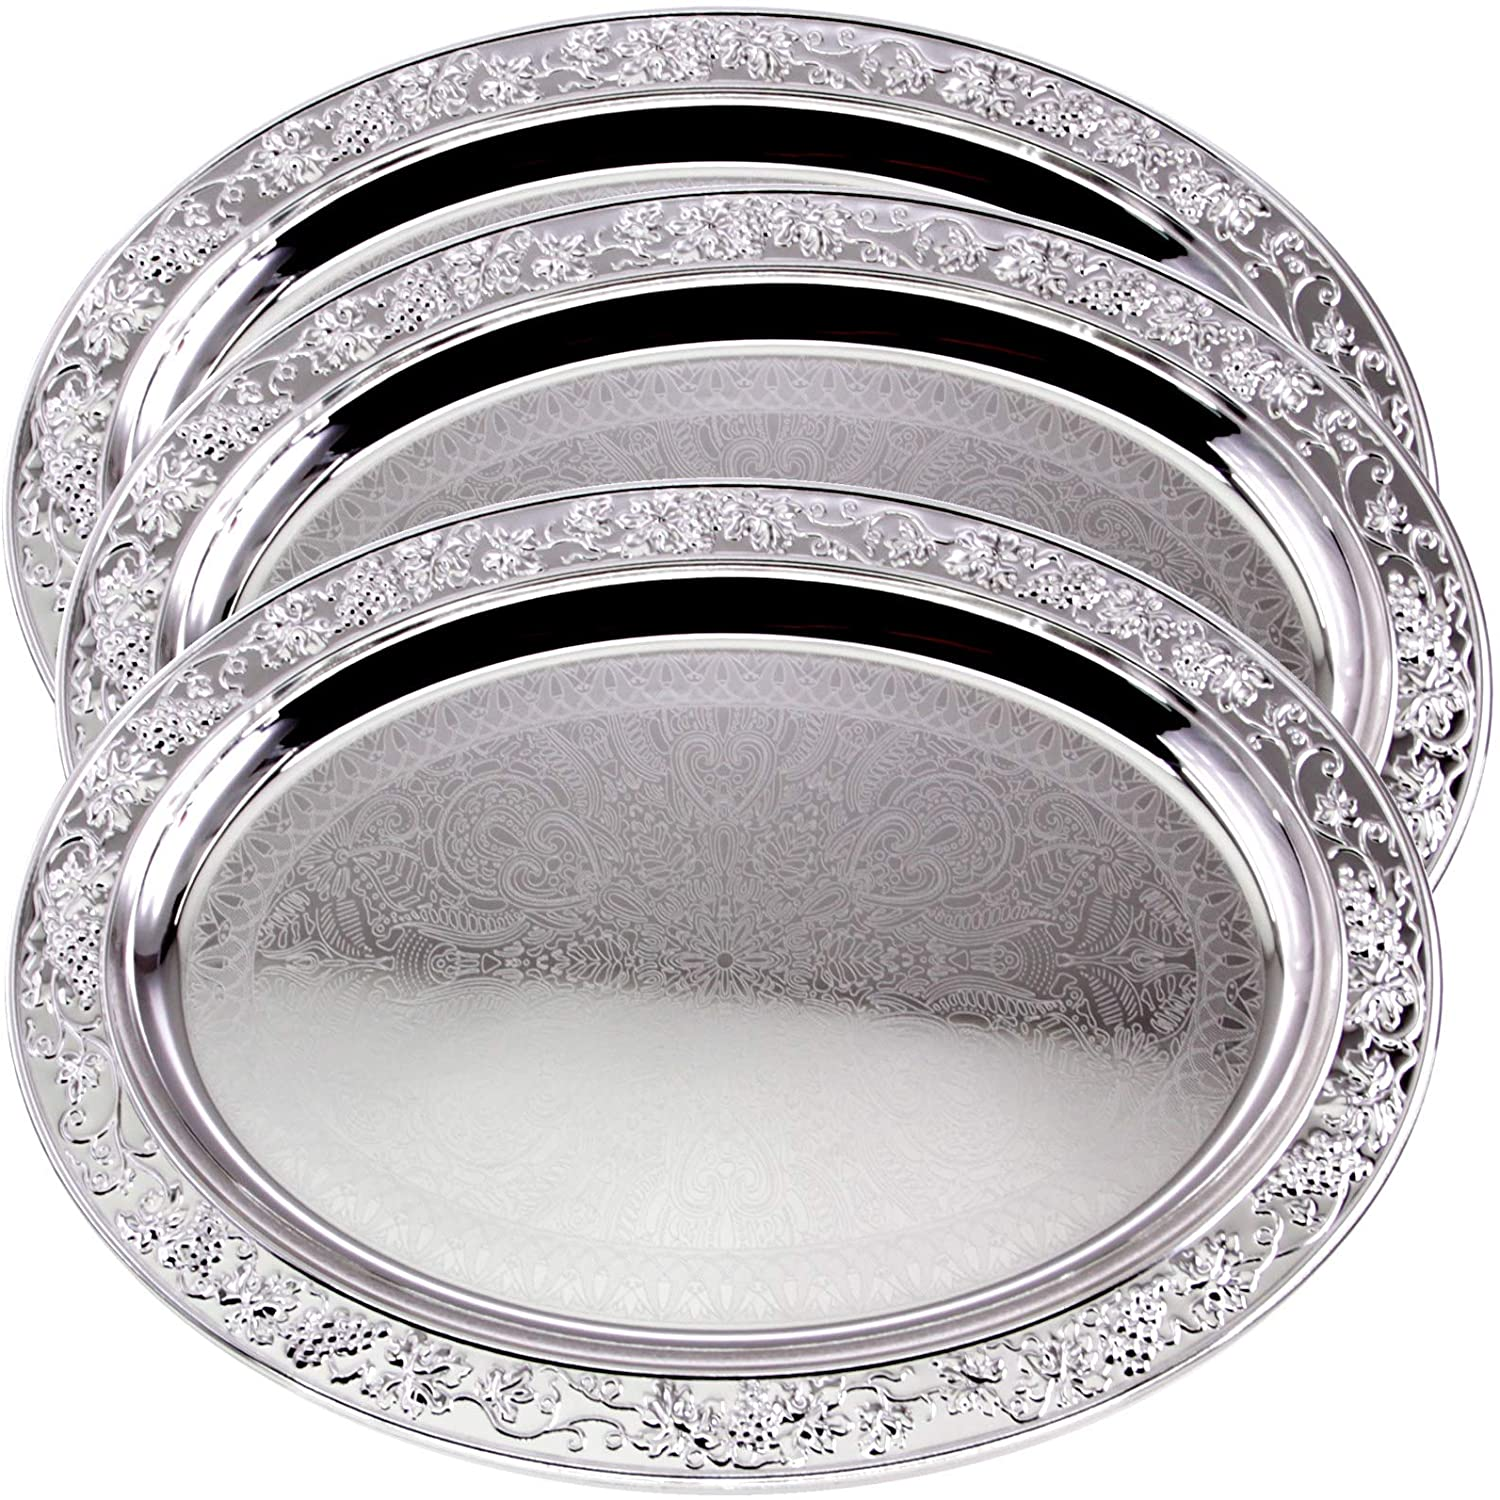 Maro Megastore (Pack of 3 20.2 inch x 14.8 inch Oval Chrome Plated Serving Tray Stylish Design Floral Engraved Edge Decorative Party Birthday Wedding Dessert Buffet Wine Platter Plate TLA-323